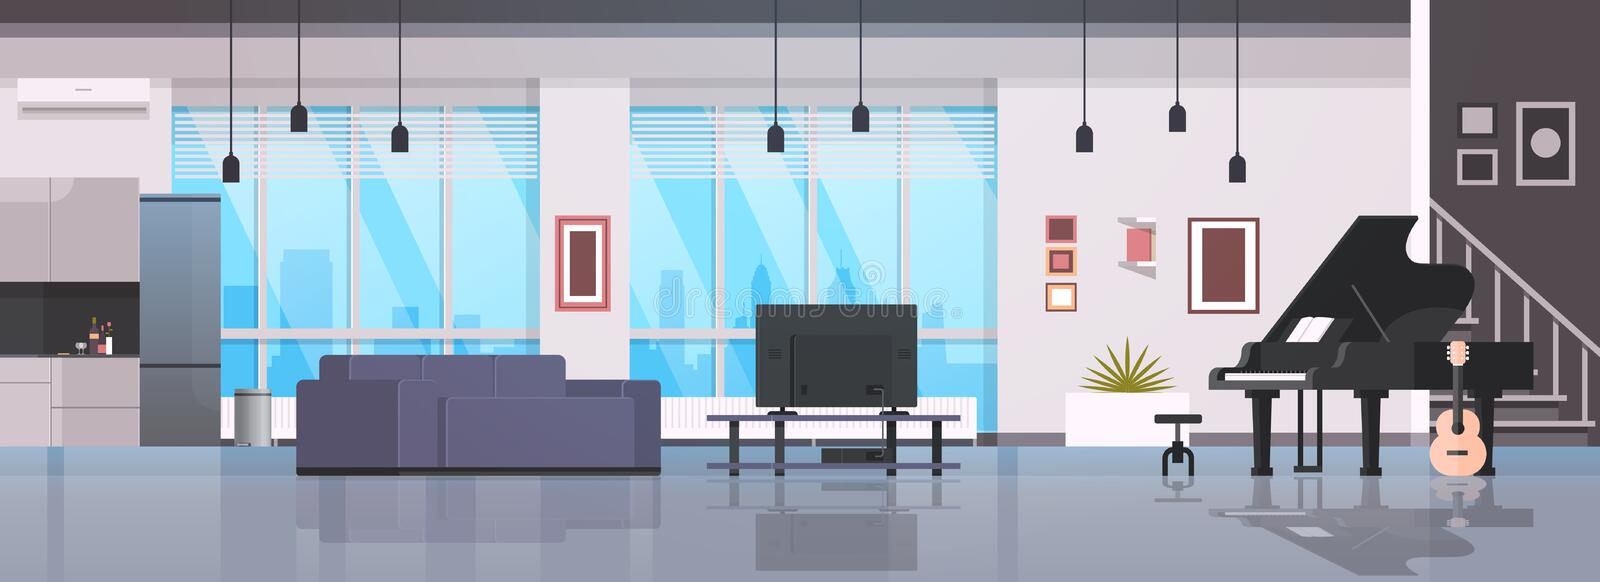 Contemporary home hall musical instruments piano guitar empty nobody house room modern apartment interior flat. Horizontal banner vector illustration vector illustration